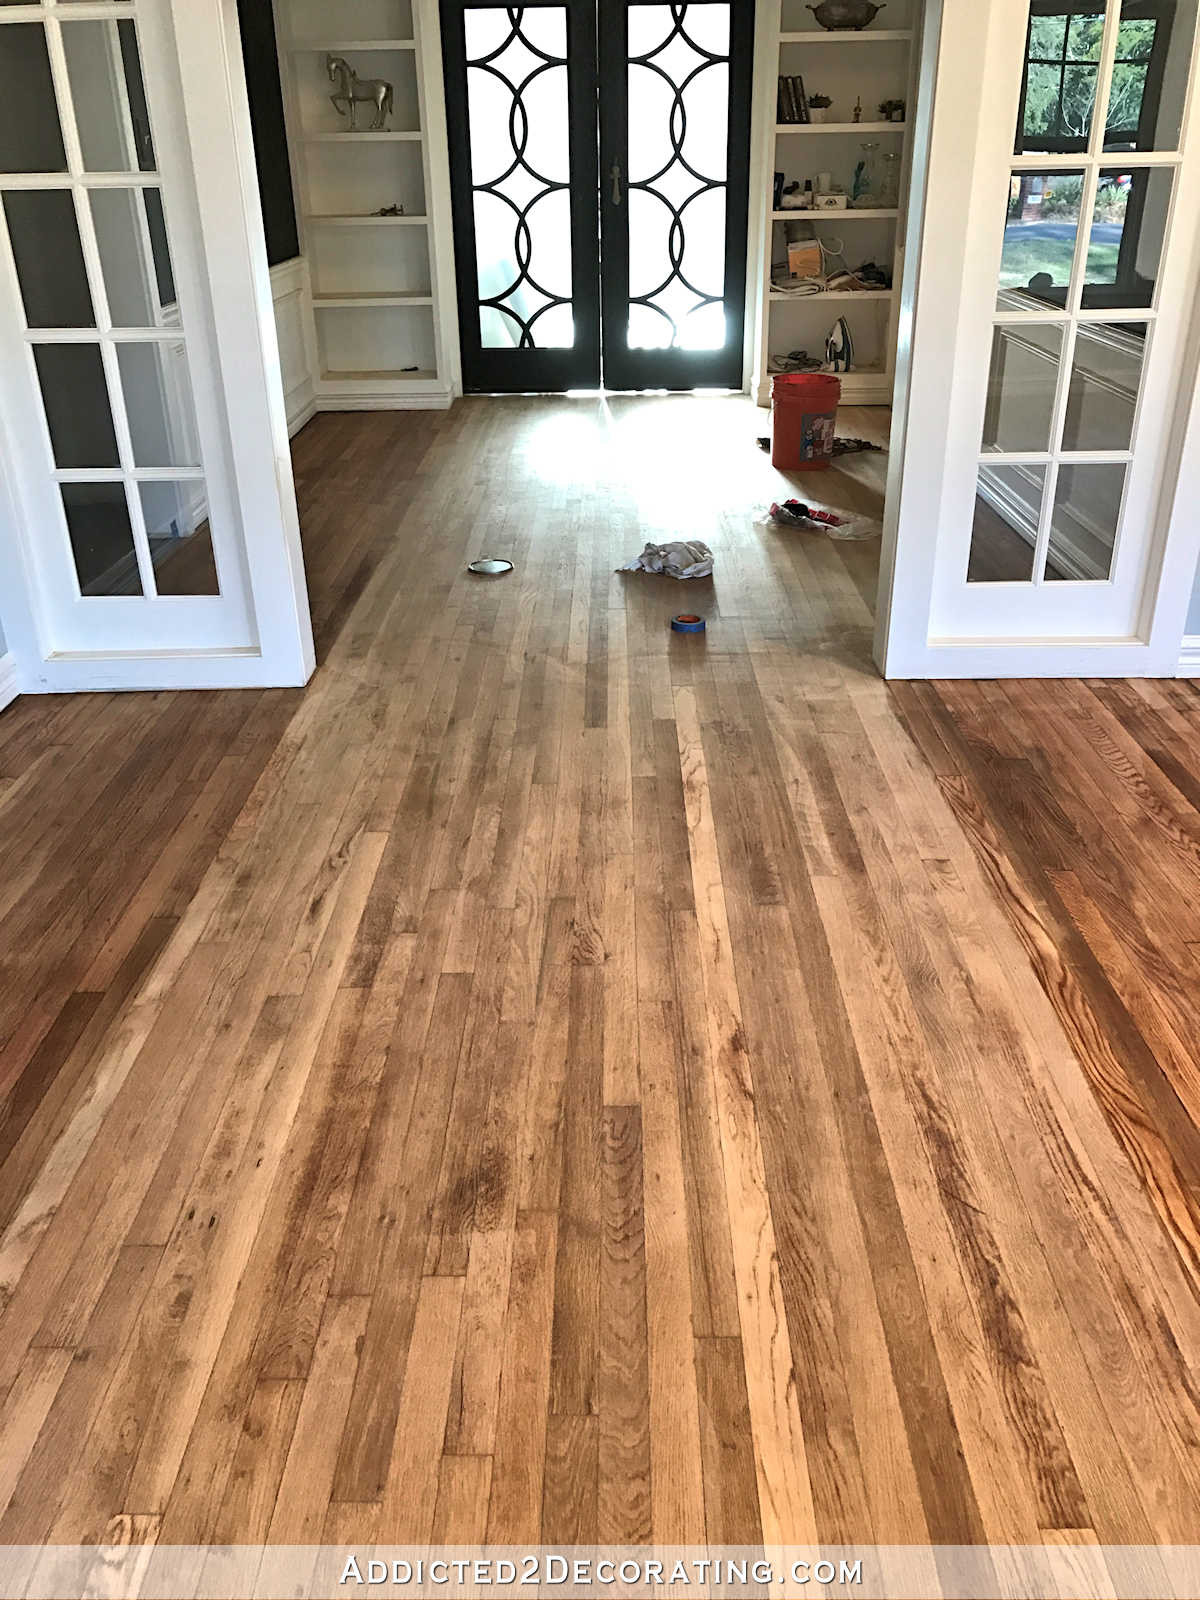 How to Select Hardwood Floor Color Of Adventures In Staining My Red Oak Hardwood Floors Products Process Intended for Staining Red Oak Hardwood Floors 5 Music Room Wood Conditioner